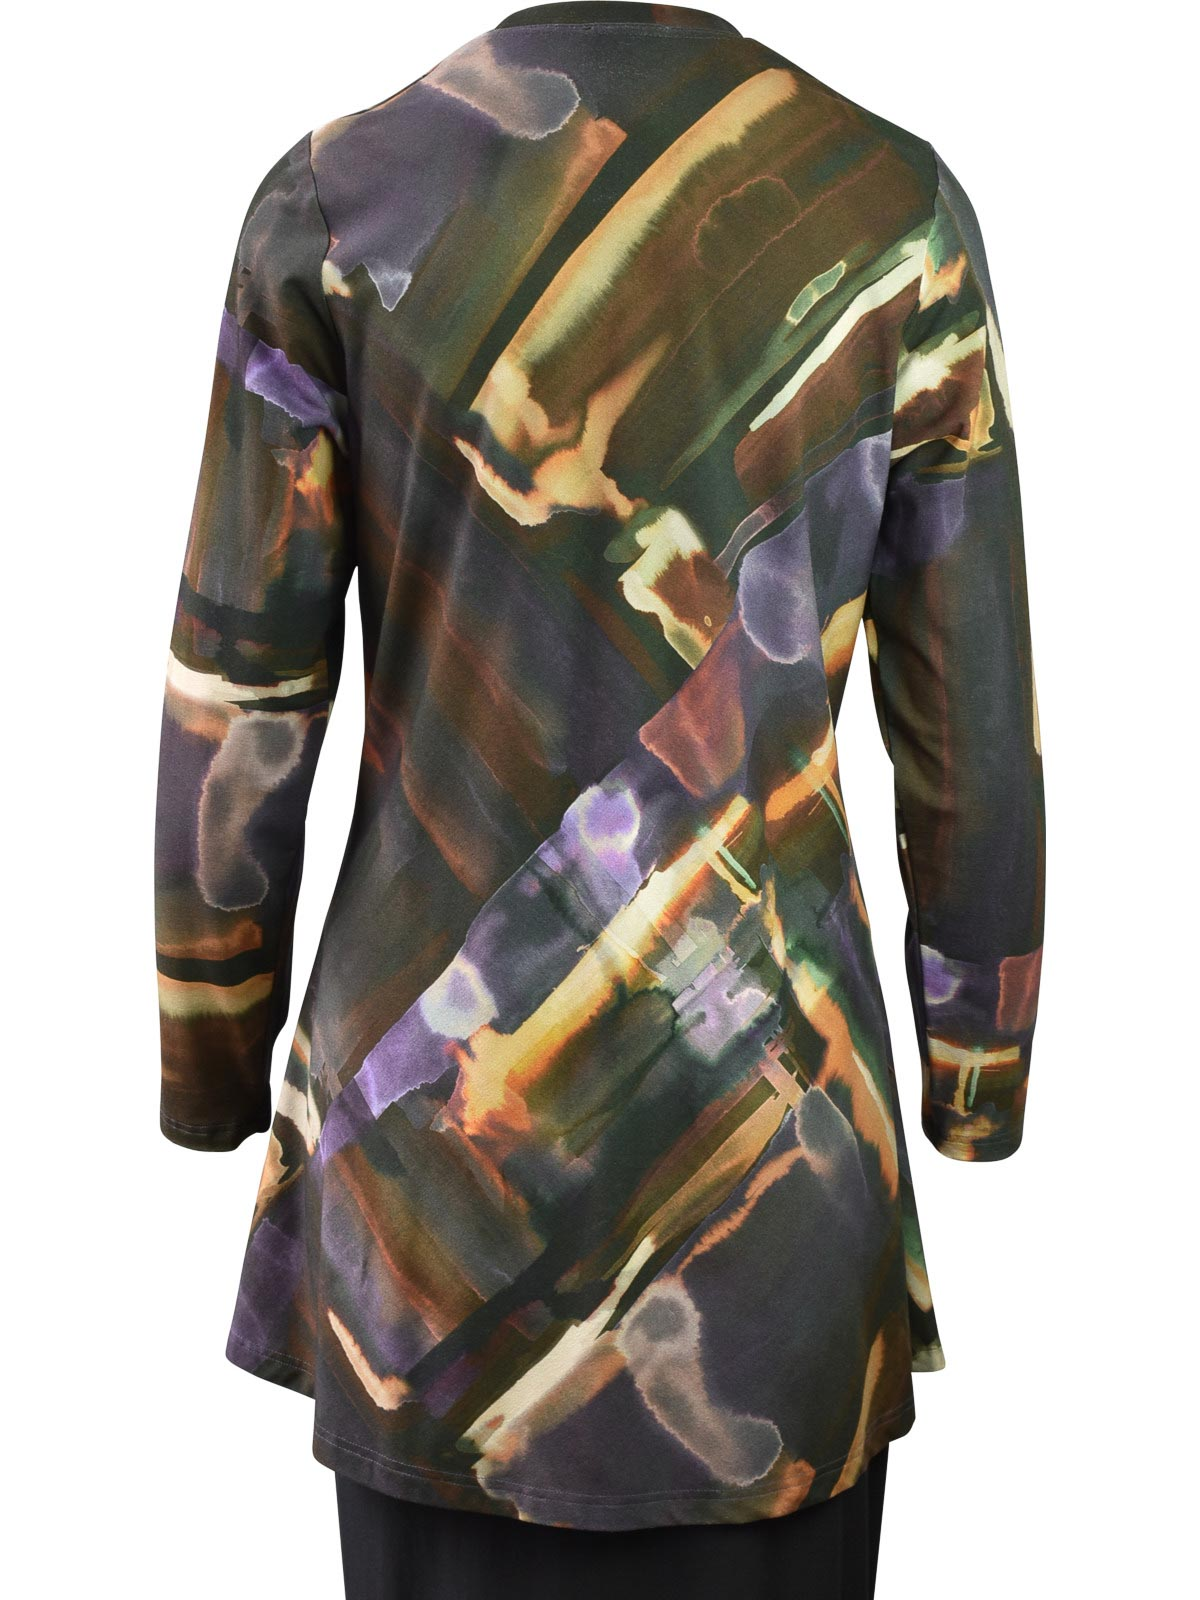 Q'Neel Printed Round Neck Tunic, Brown Multi - Statement Boutique